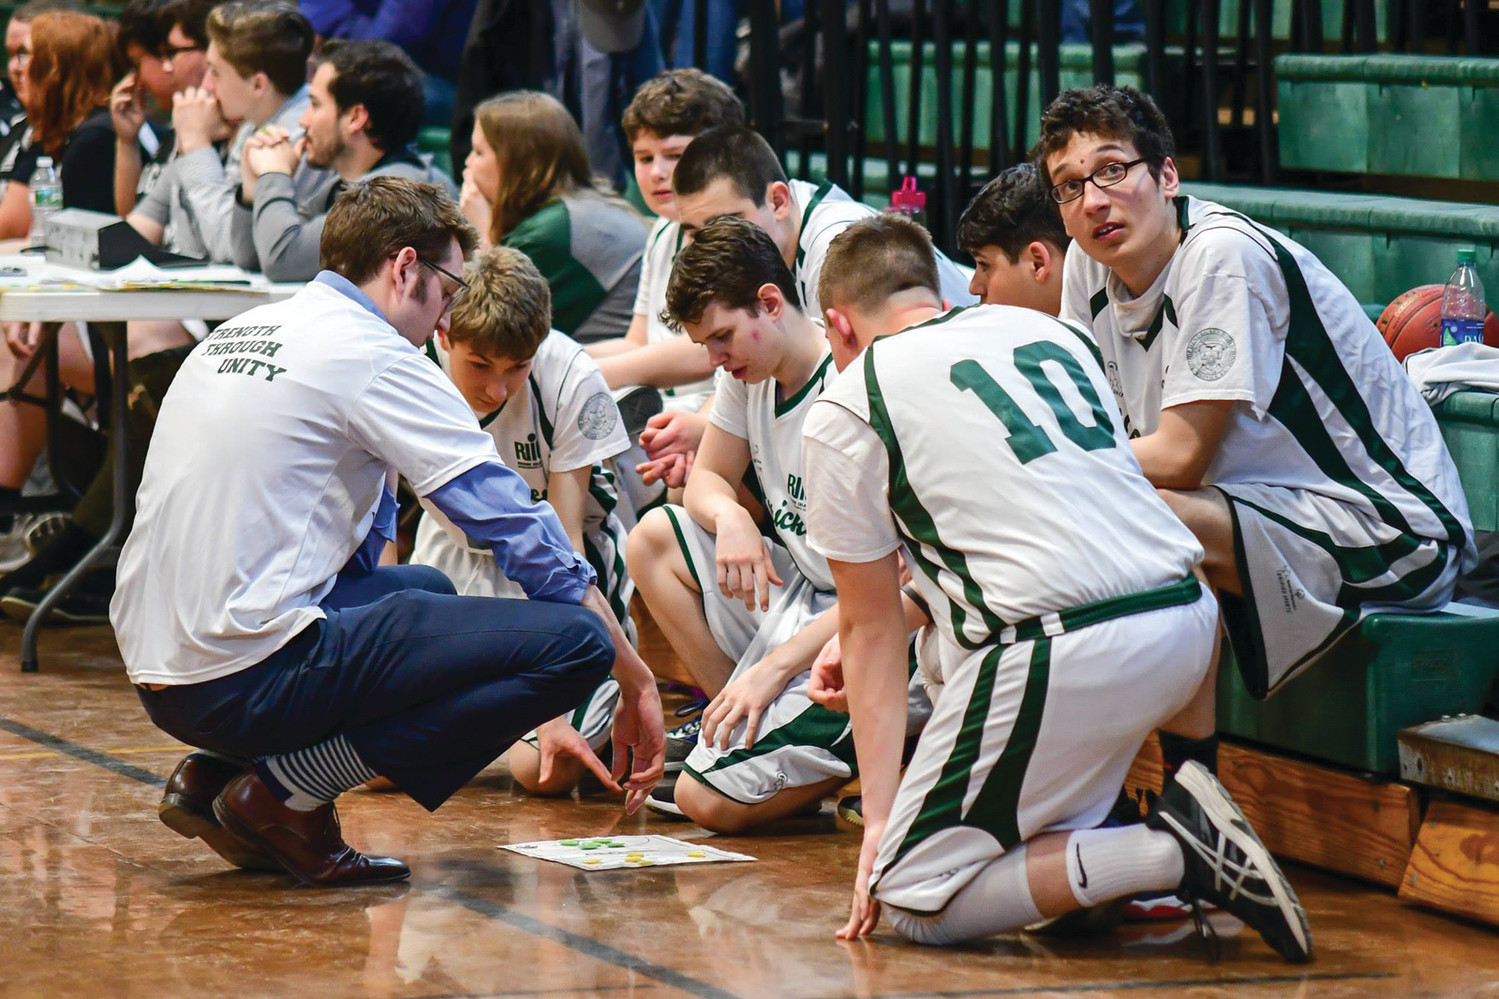 X'S AND O'S: The Bishop Hendricken unified basketball team gathers during a timeout during the 2018 season.